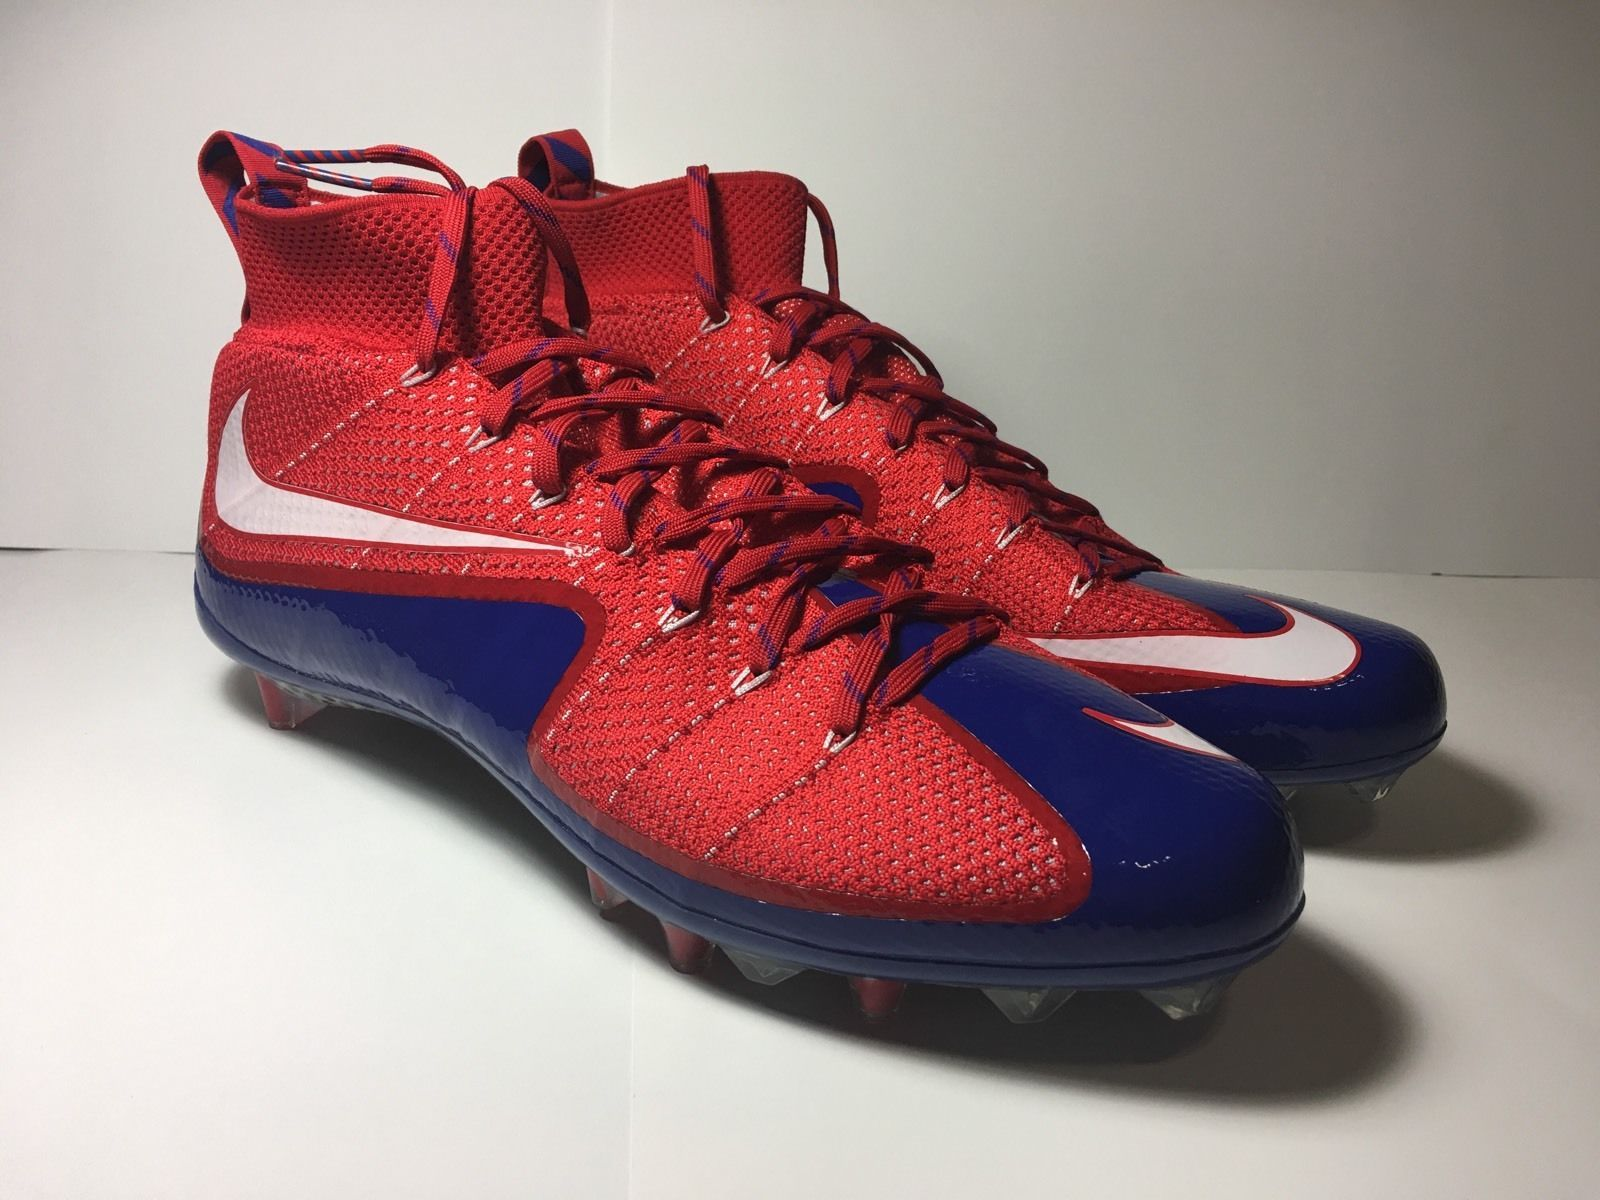 Nike Vapor Untouchable TD Flyknit 707455-604 football mens cleats red blue  white